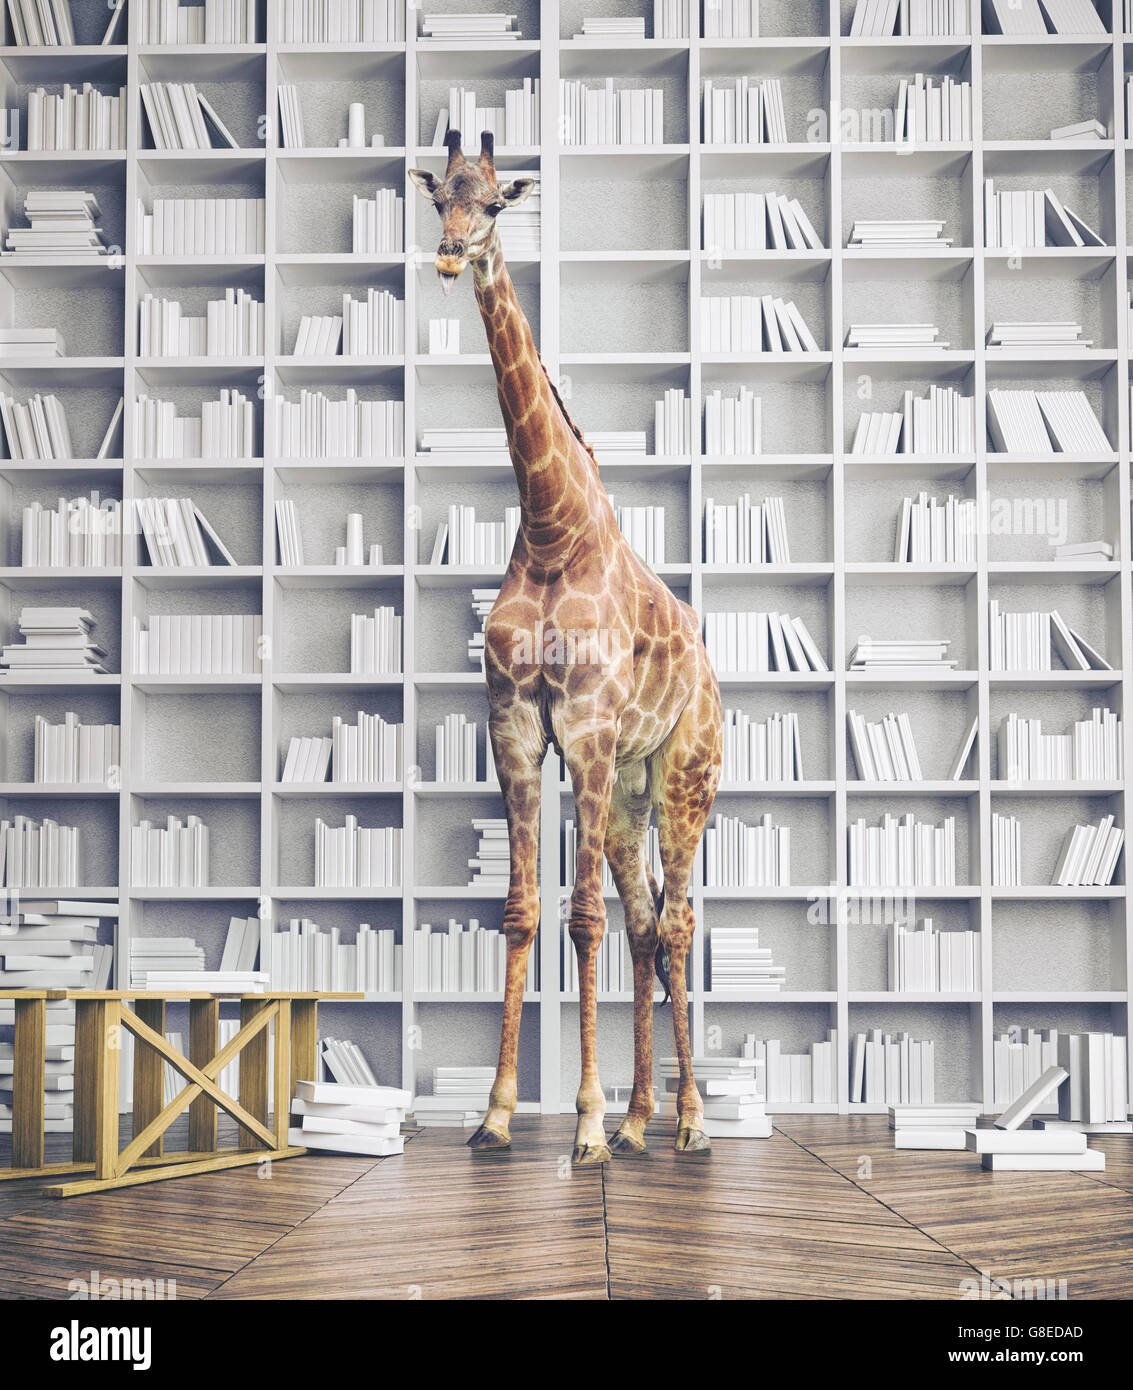 giraffe in the room with book shelves. Creative photo combination concept - Stock Image